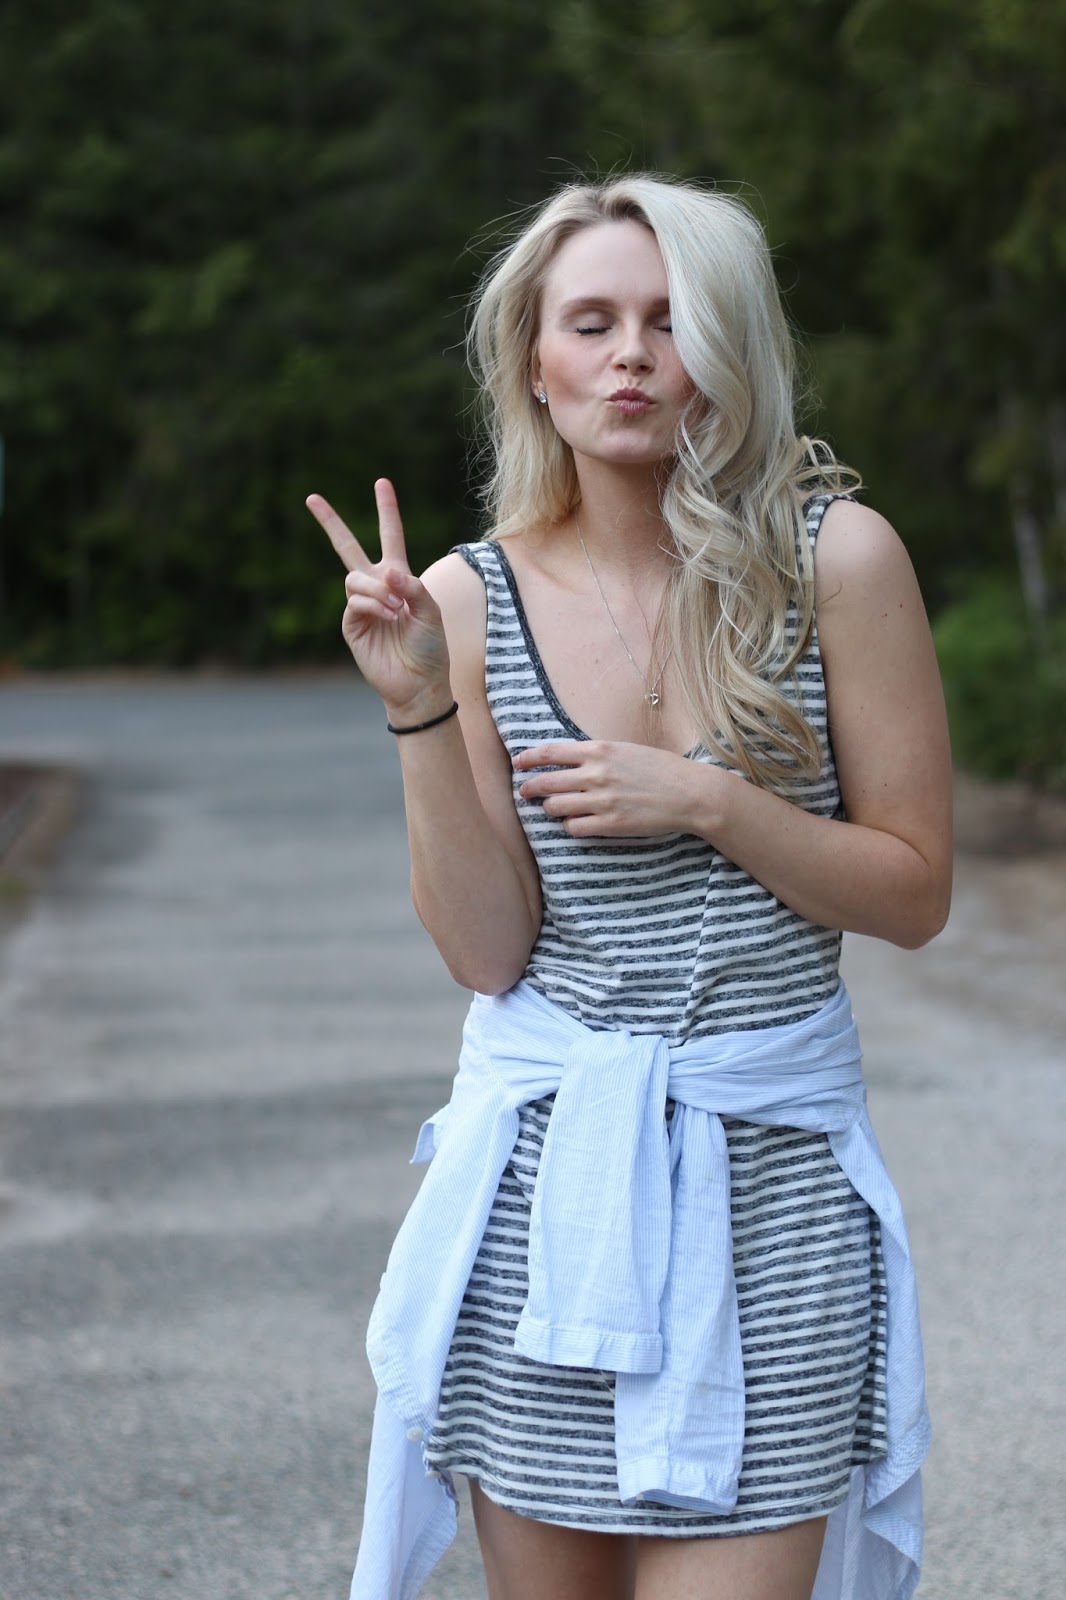 style blogger blows kisses and peace signs to camera